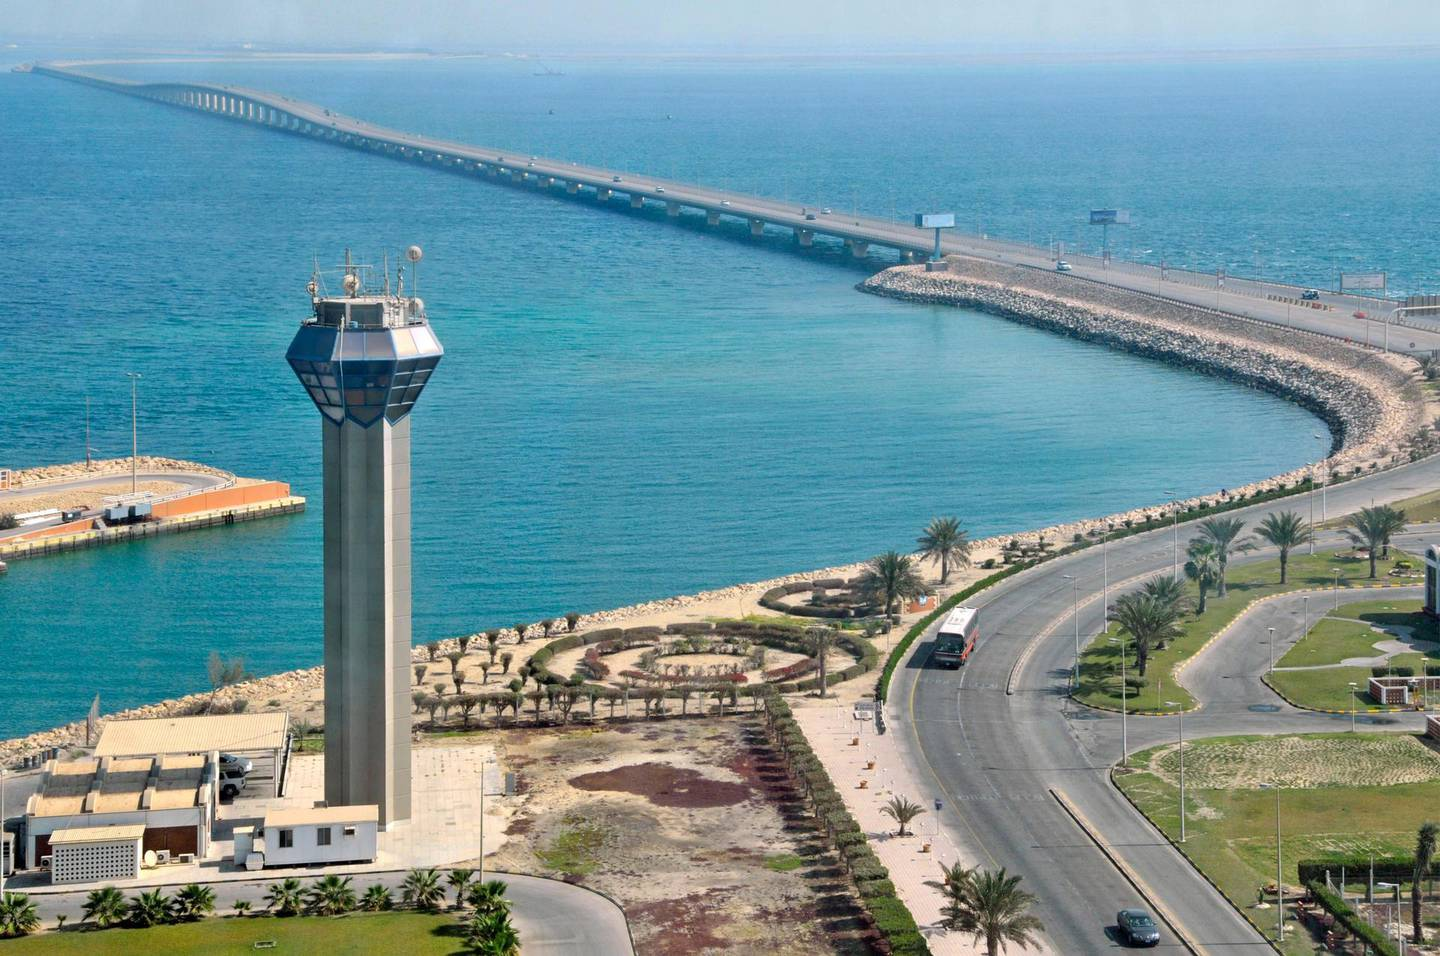 """BA5J4W King Fahd Causeway linking Bahrain and Saudi Arabia in Persian Gulf view towards Bahrain from approx """"mid point"""" services area"""